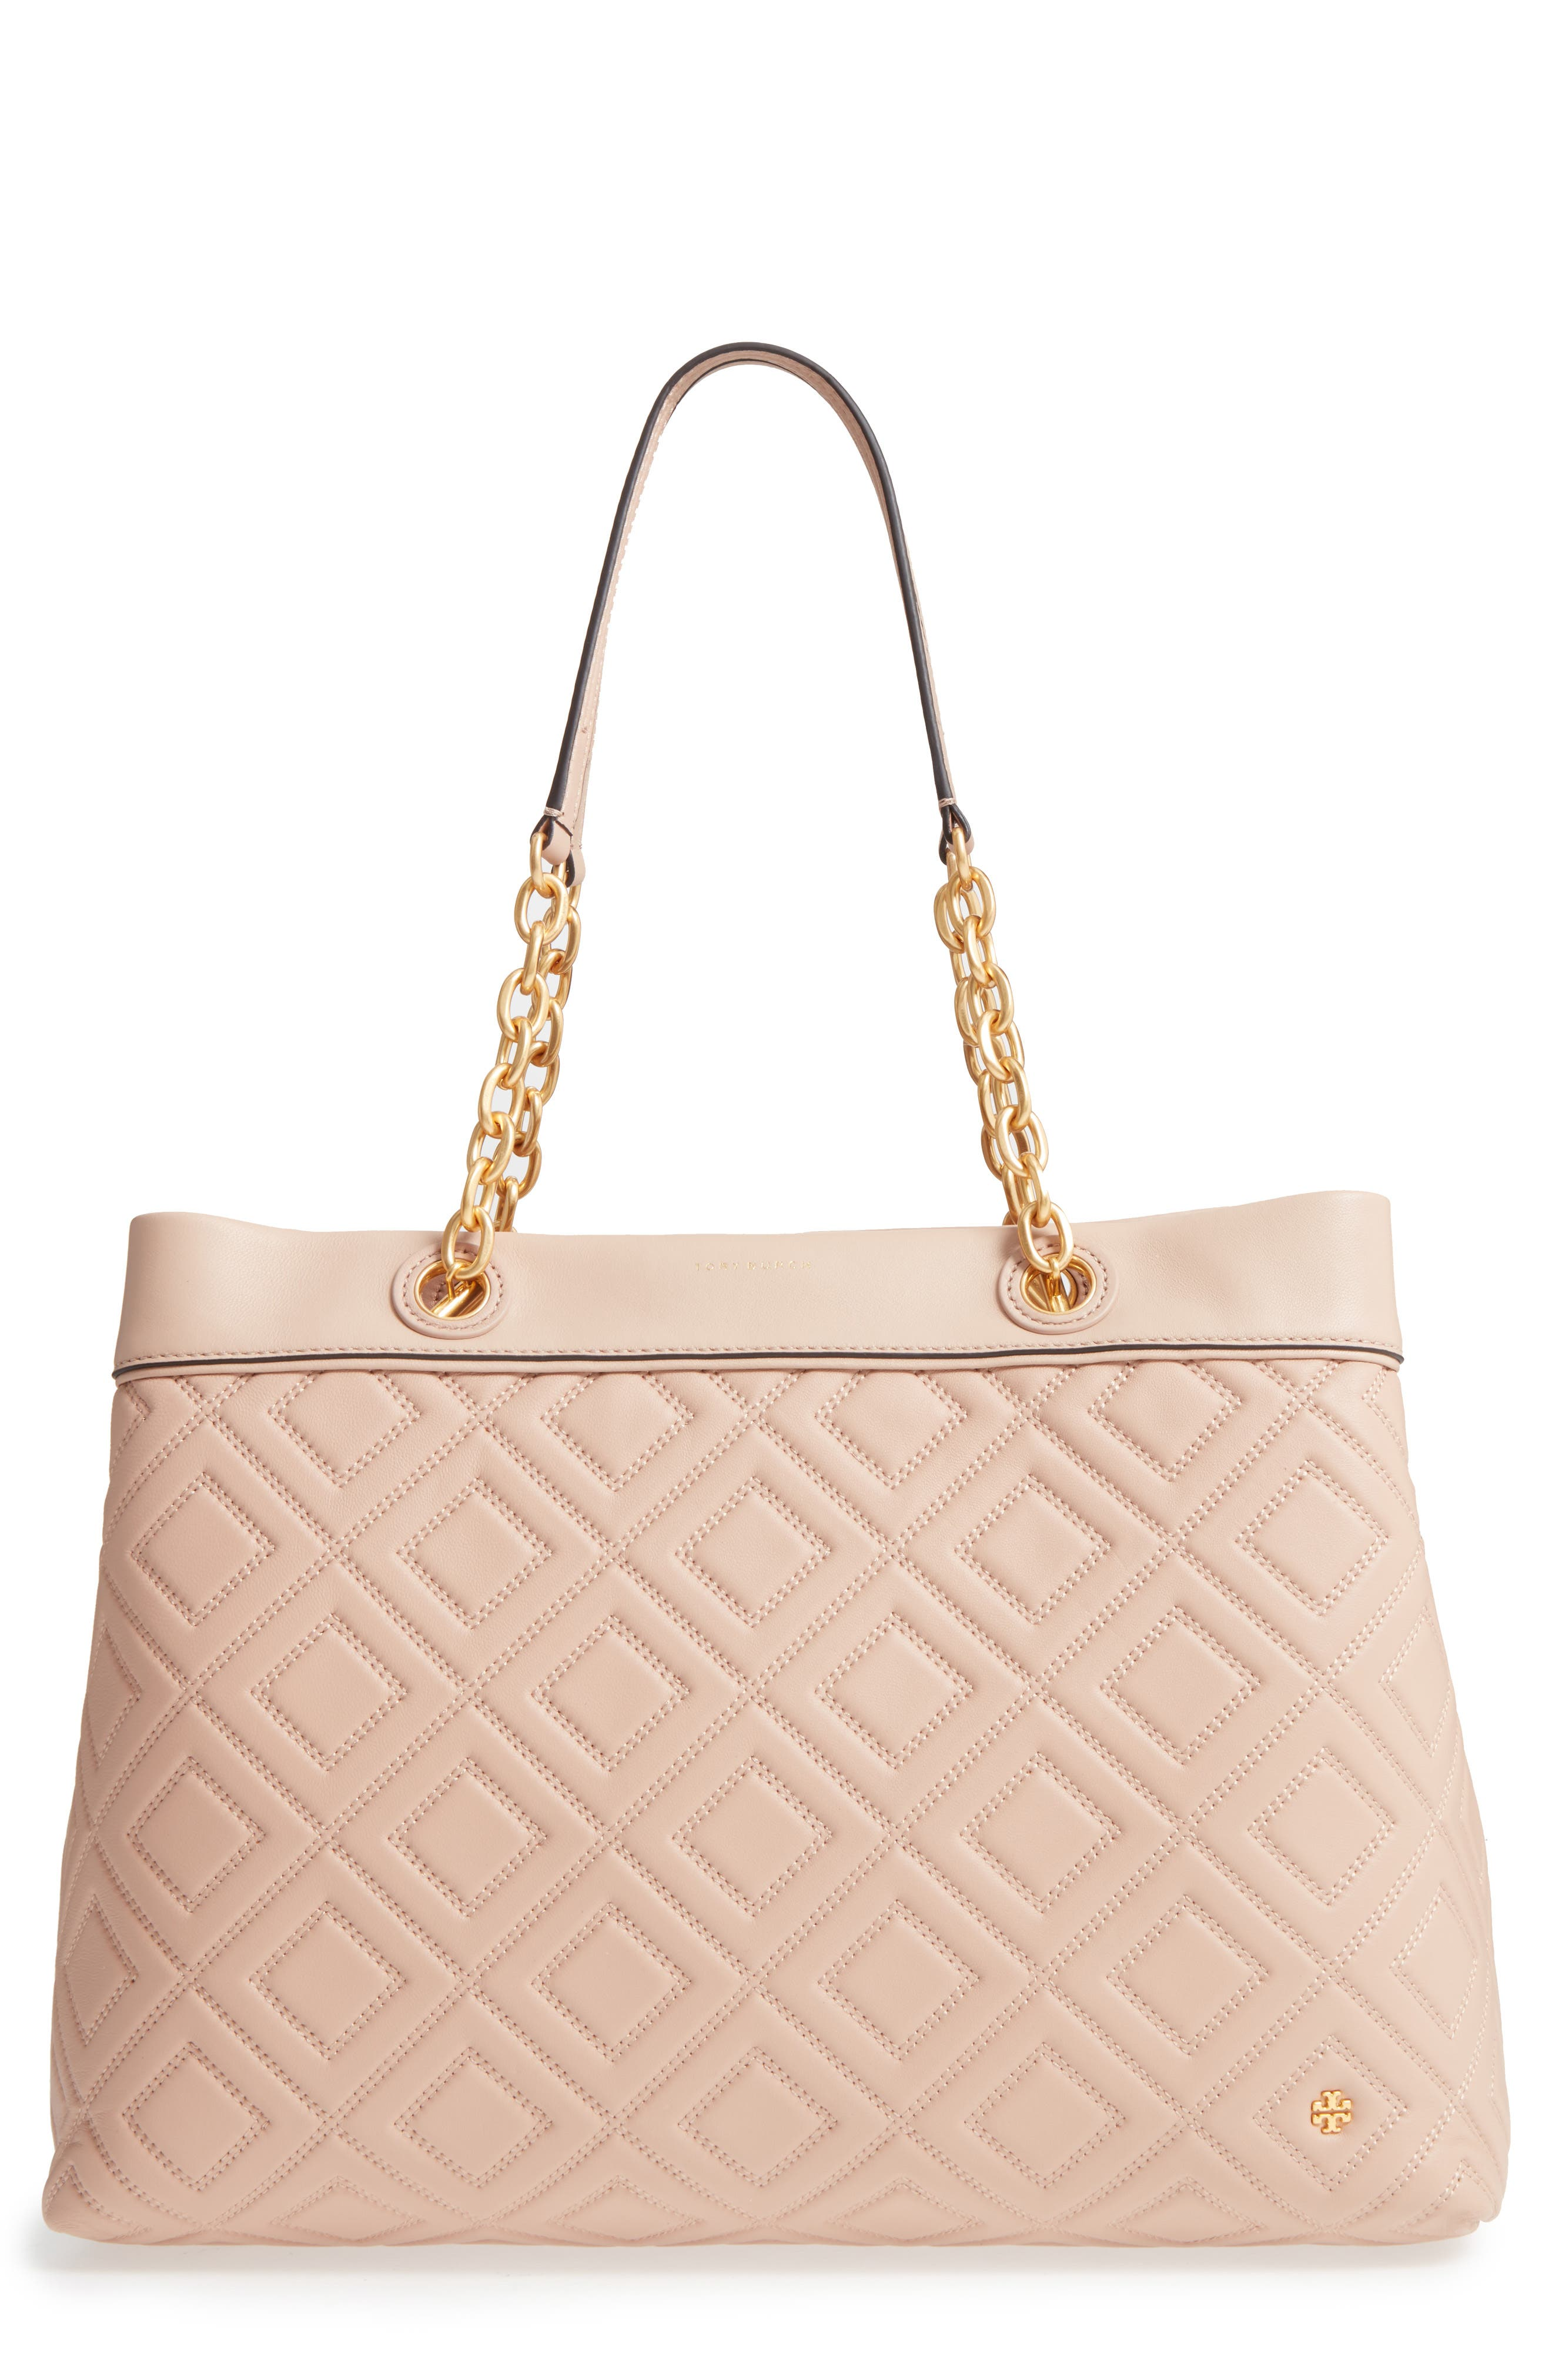 Alternate Image 1 Selected - Tory Burch Lousia Lambskin Leather Tote